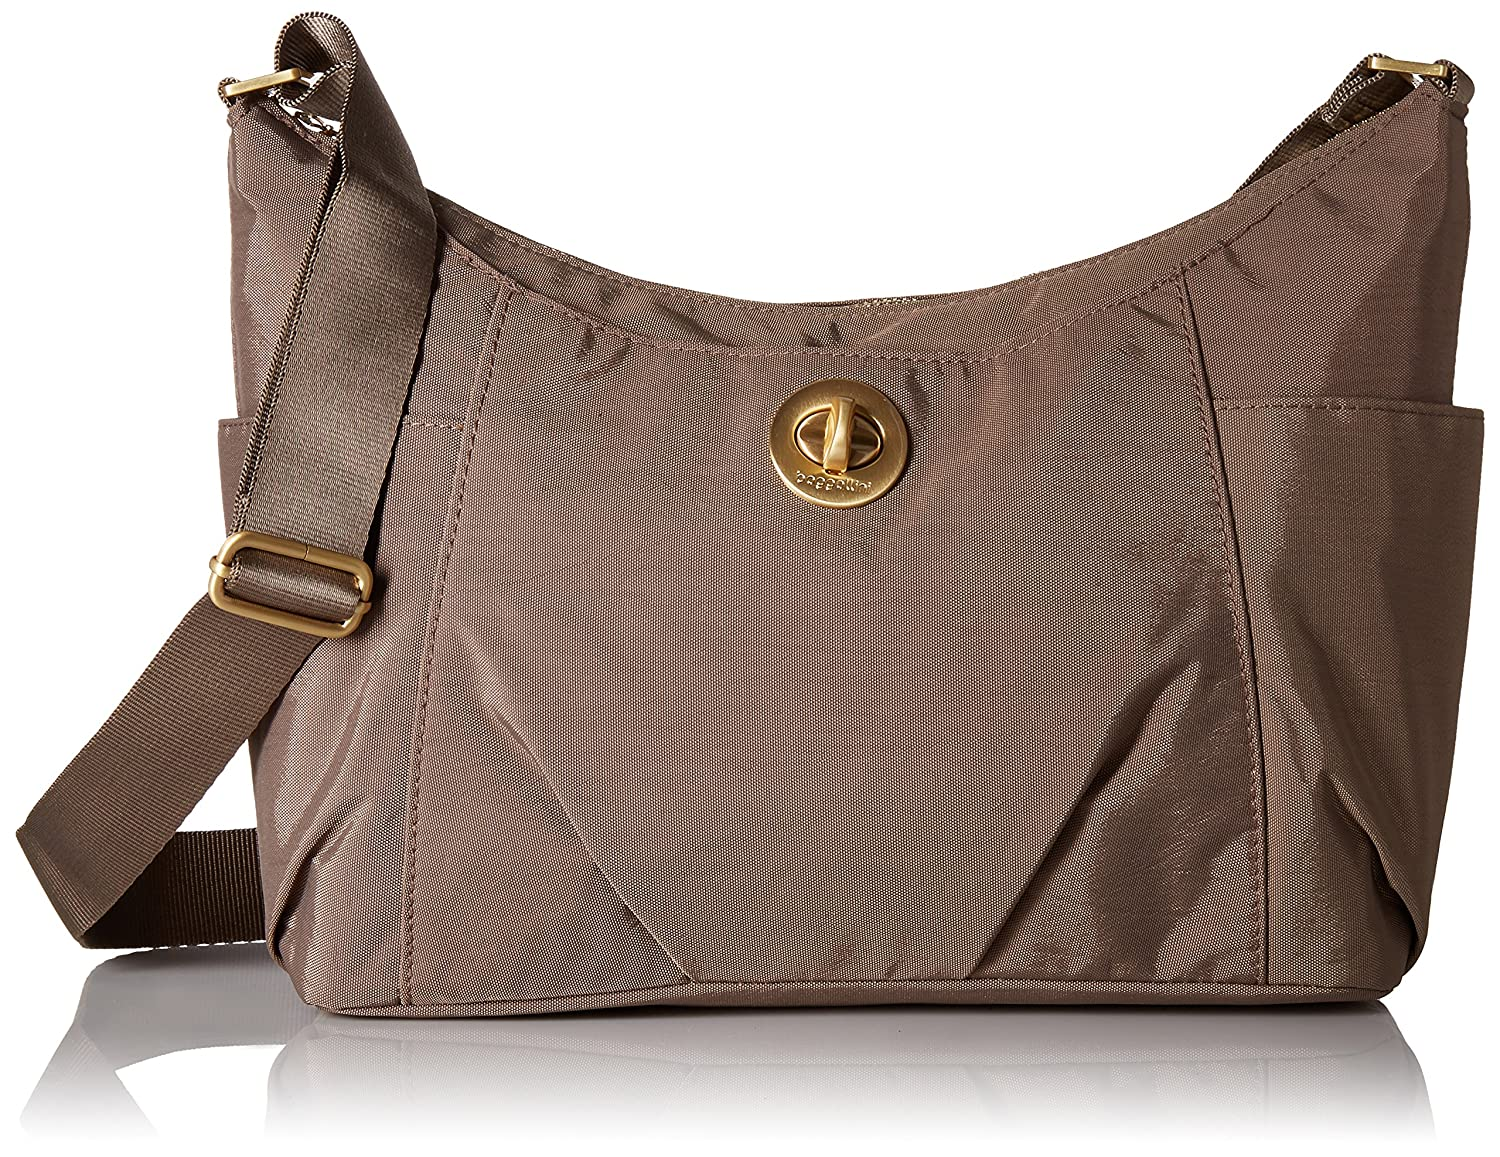 Baggallini Bahia Hobo Bag Adobe FAT17 BAH172